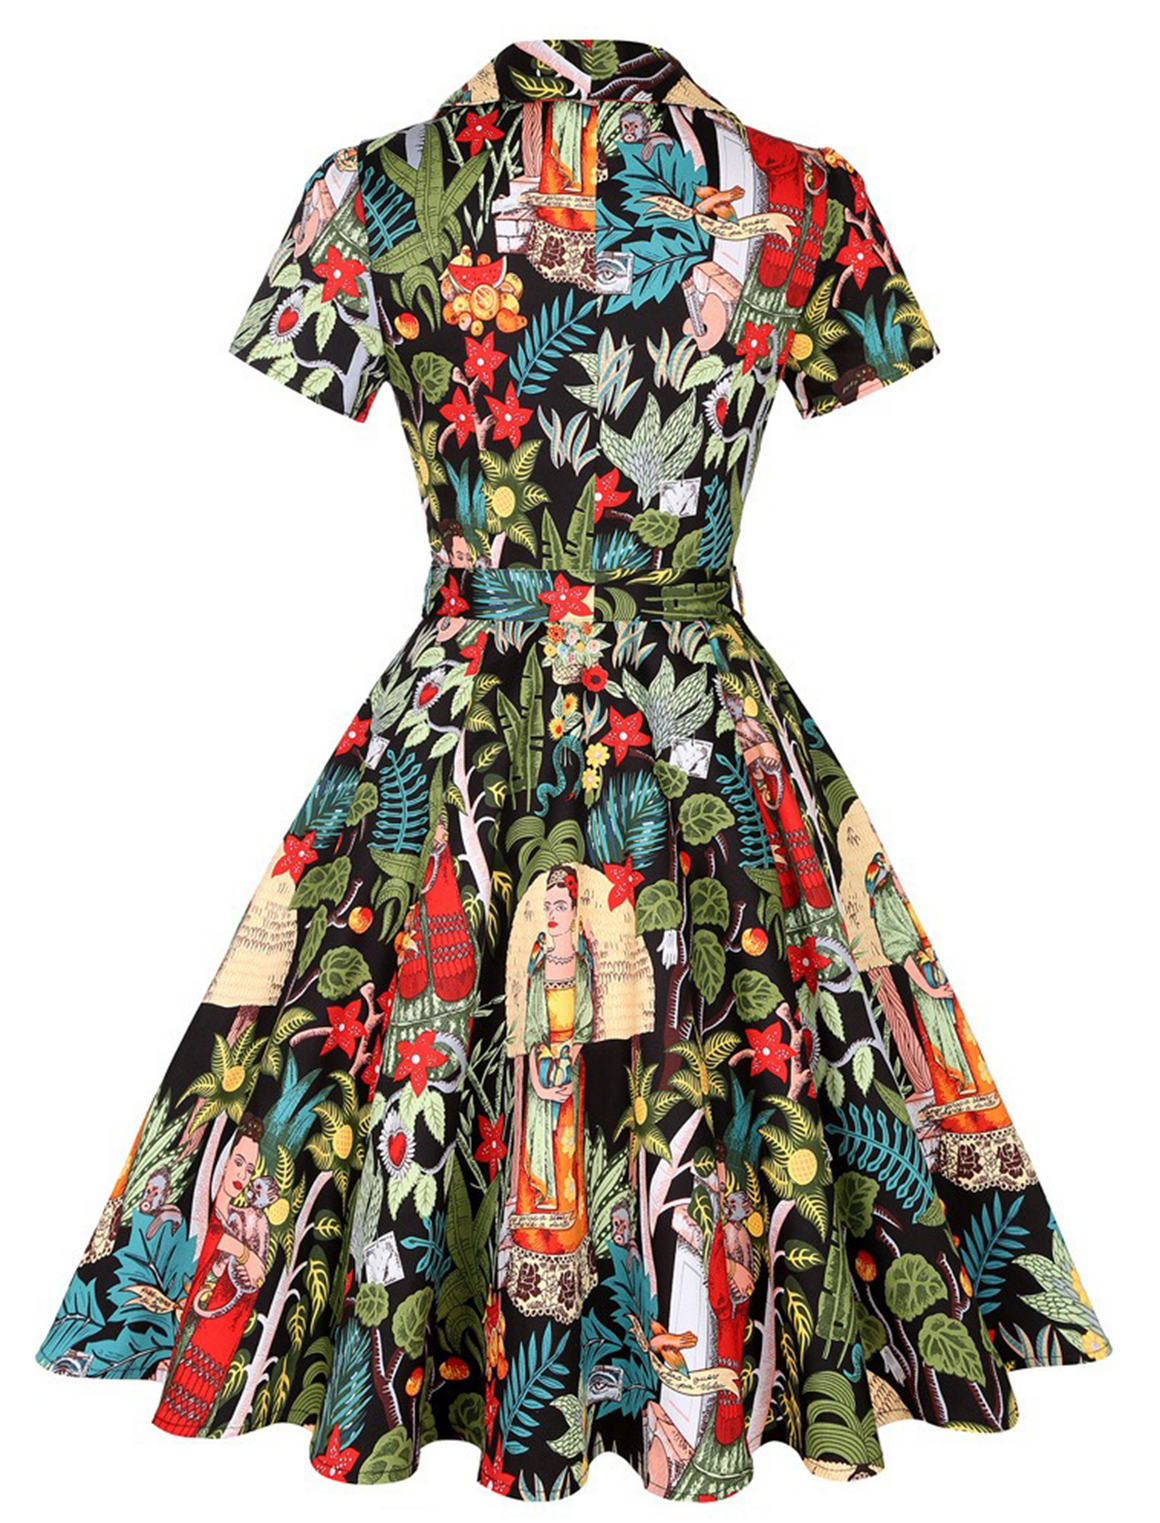 Frida Kahlo 'Frida's Garden' Print Swing Dress!